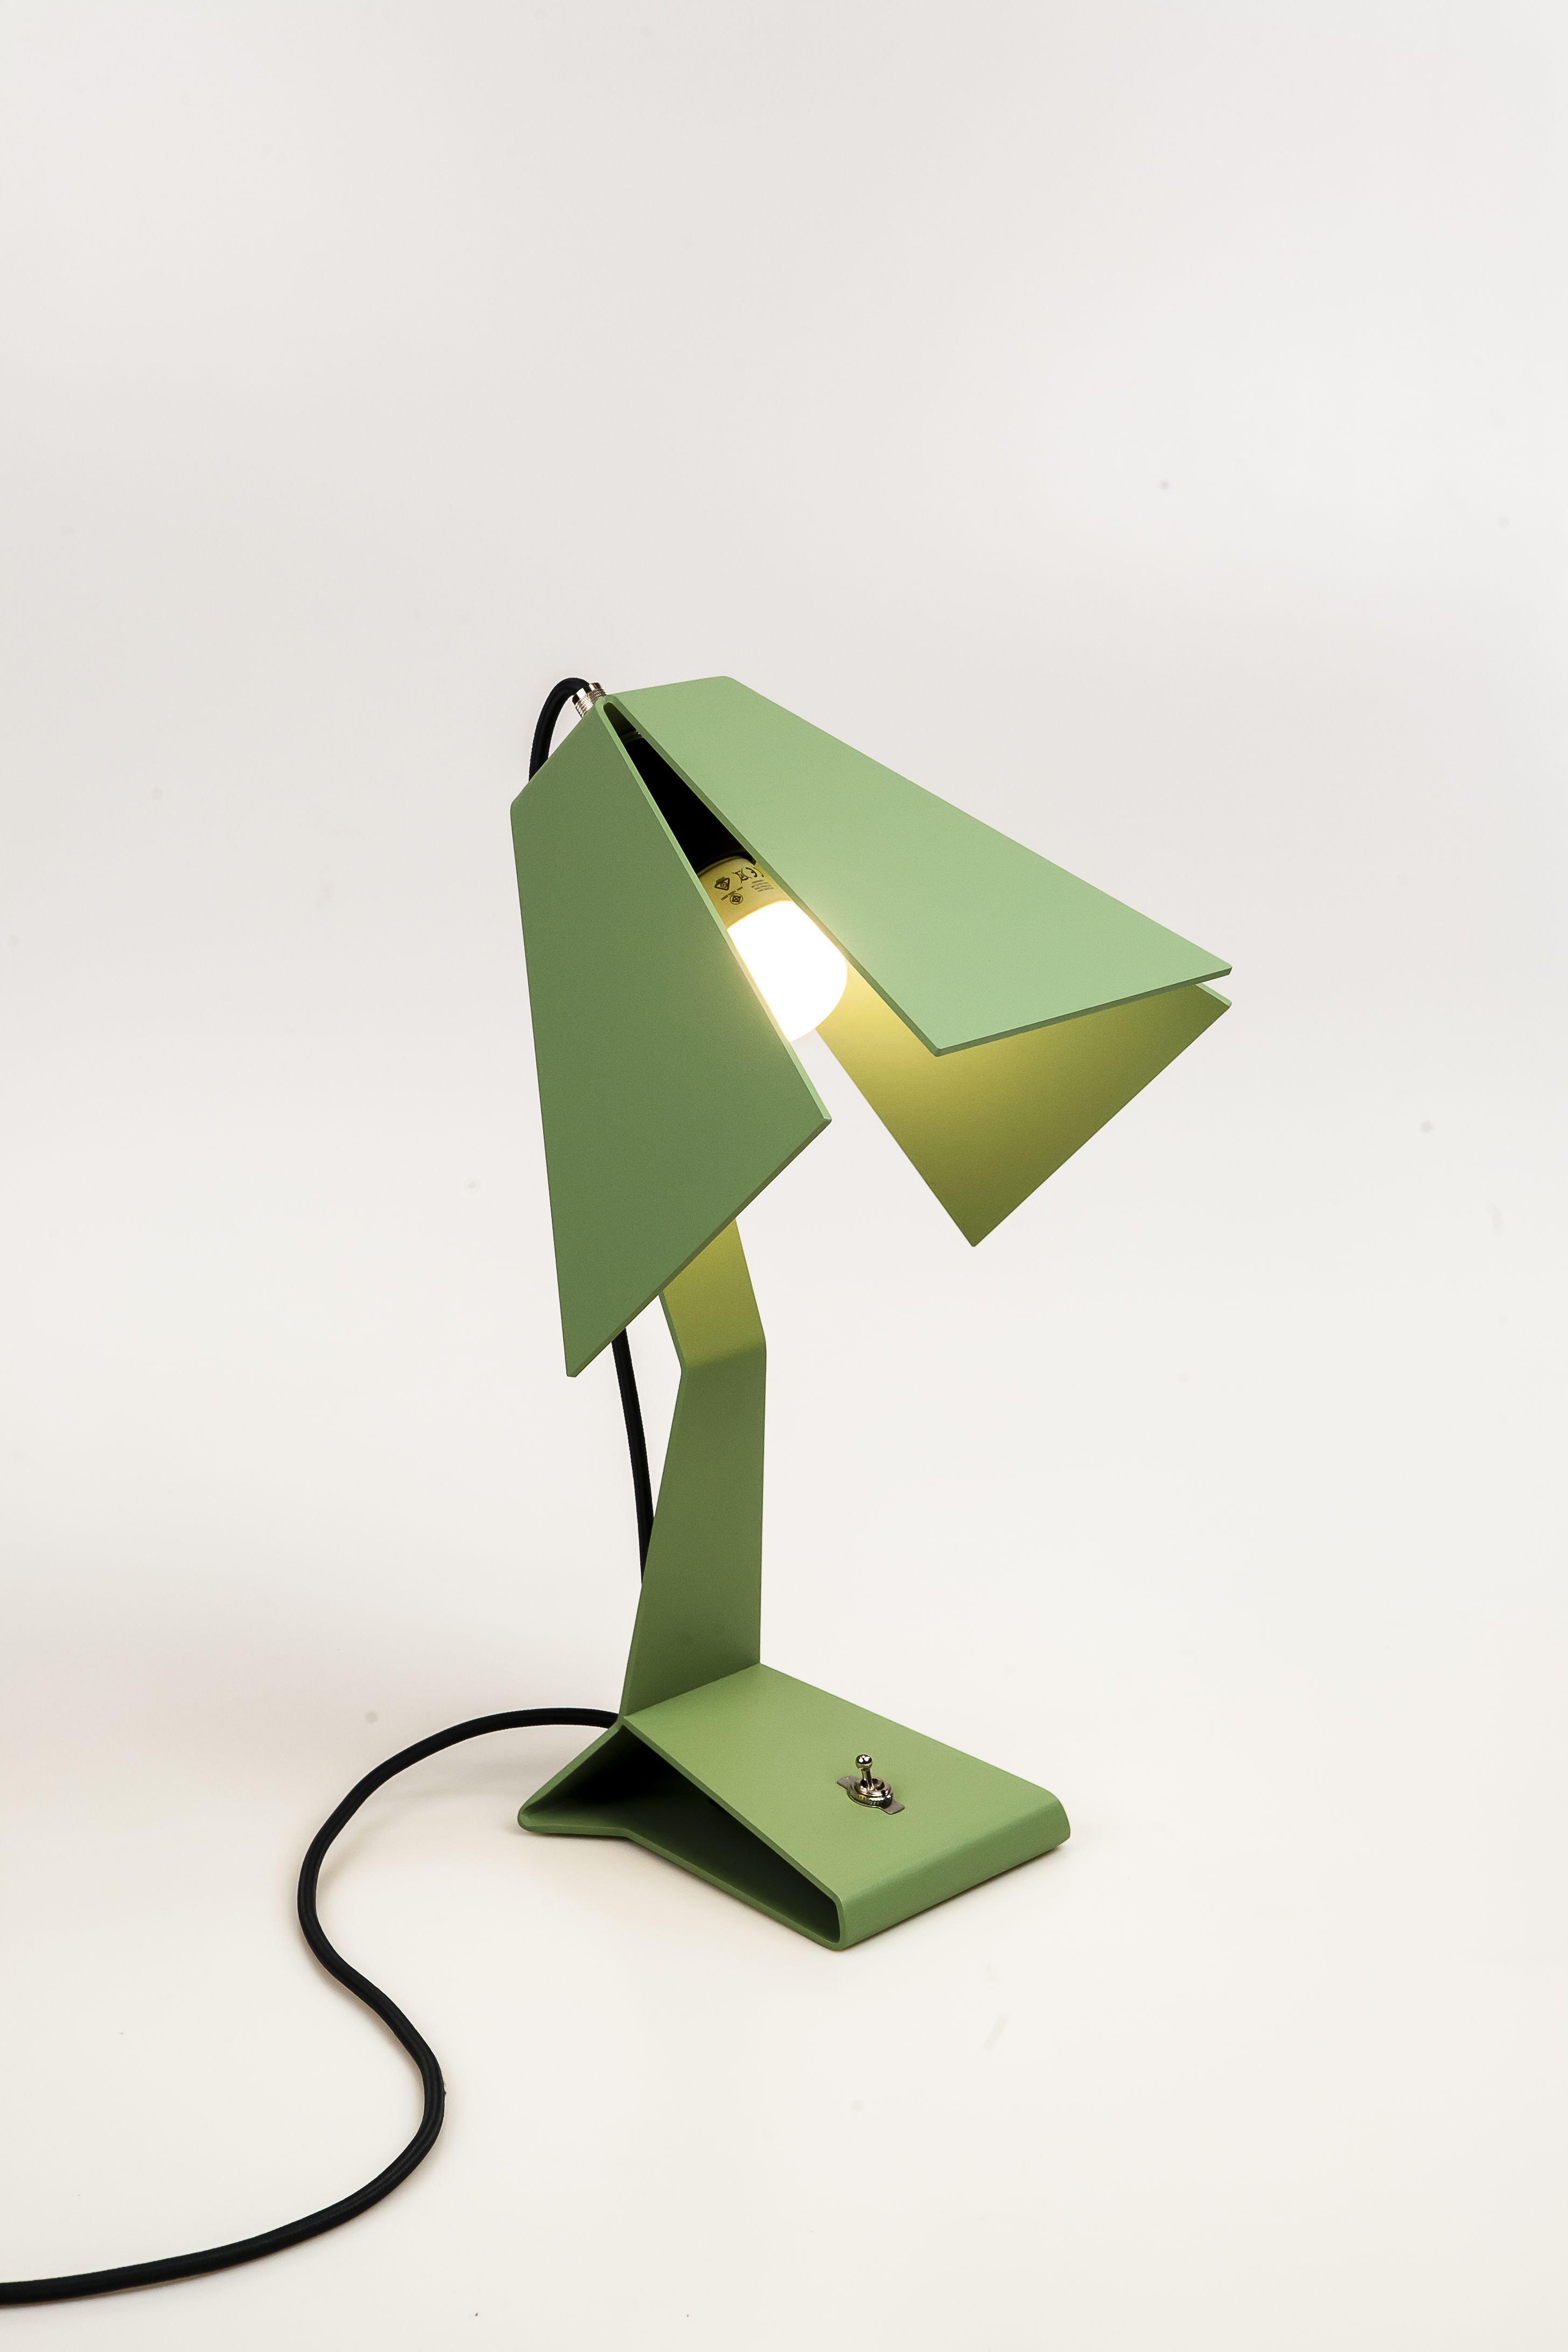 Lamp Lumi Shy Looking Desklamp Made From One Piece Of